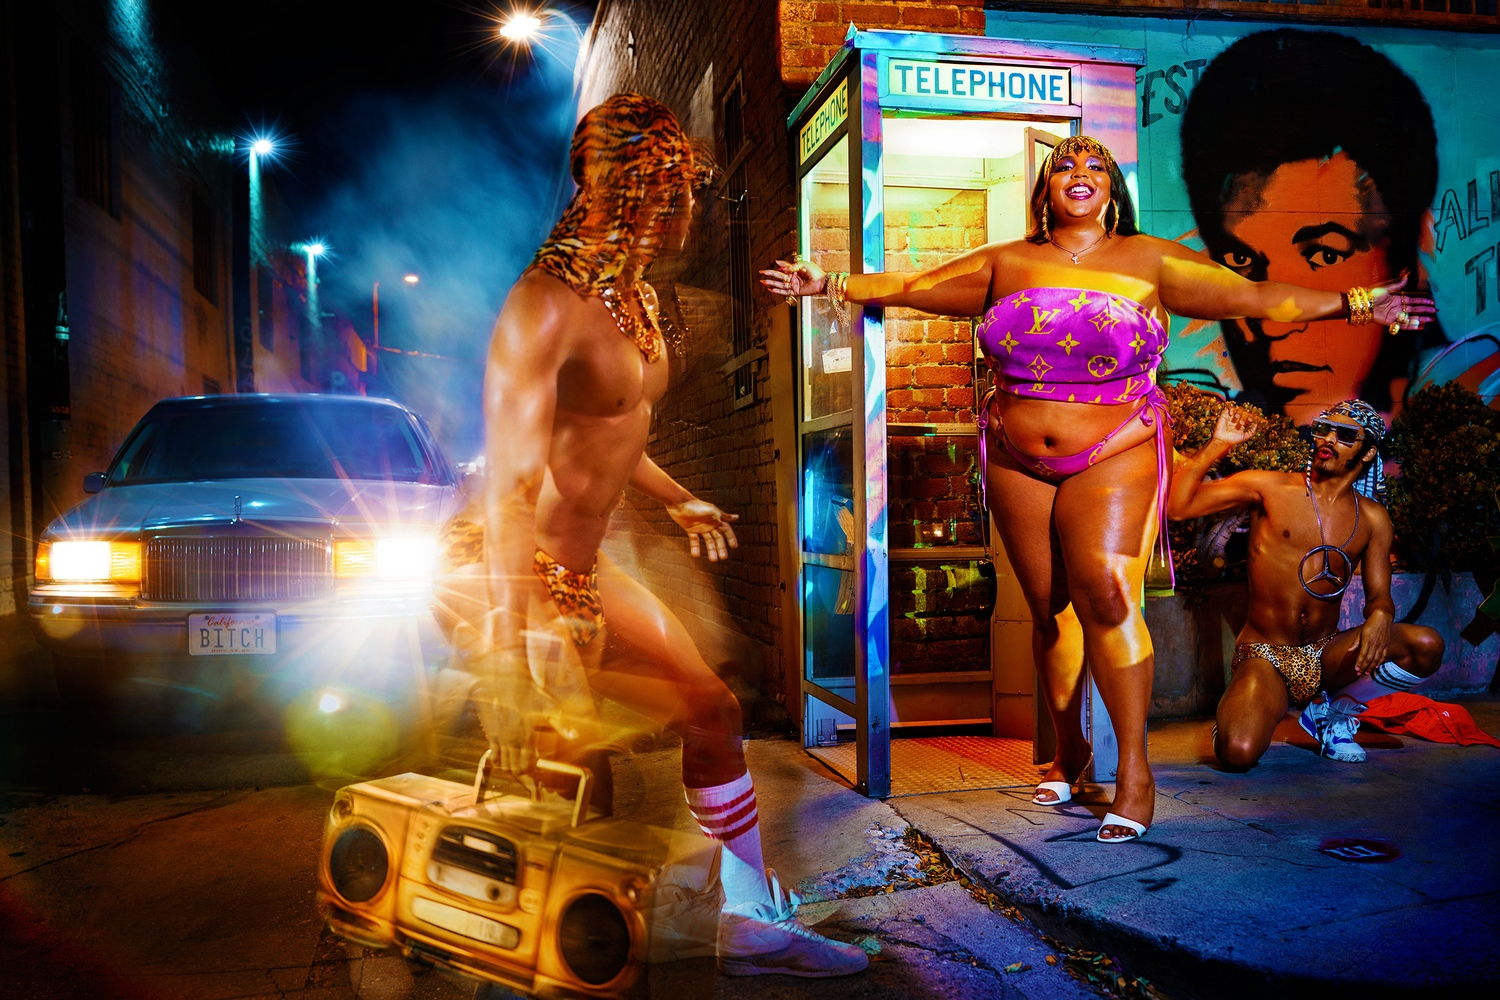 David LaChapelle Lizzo : la rencontre